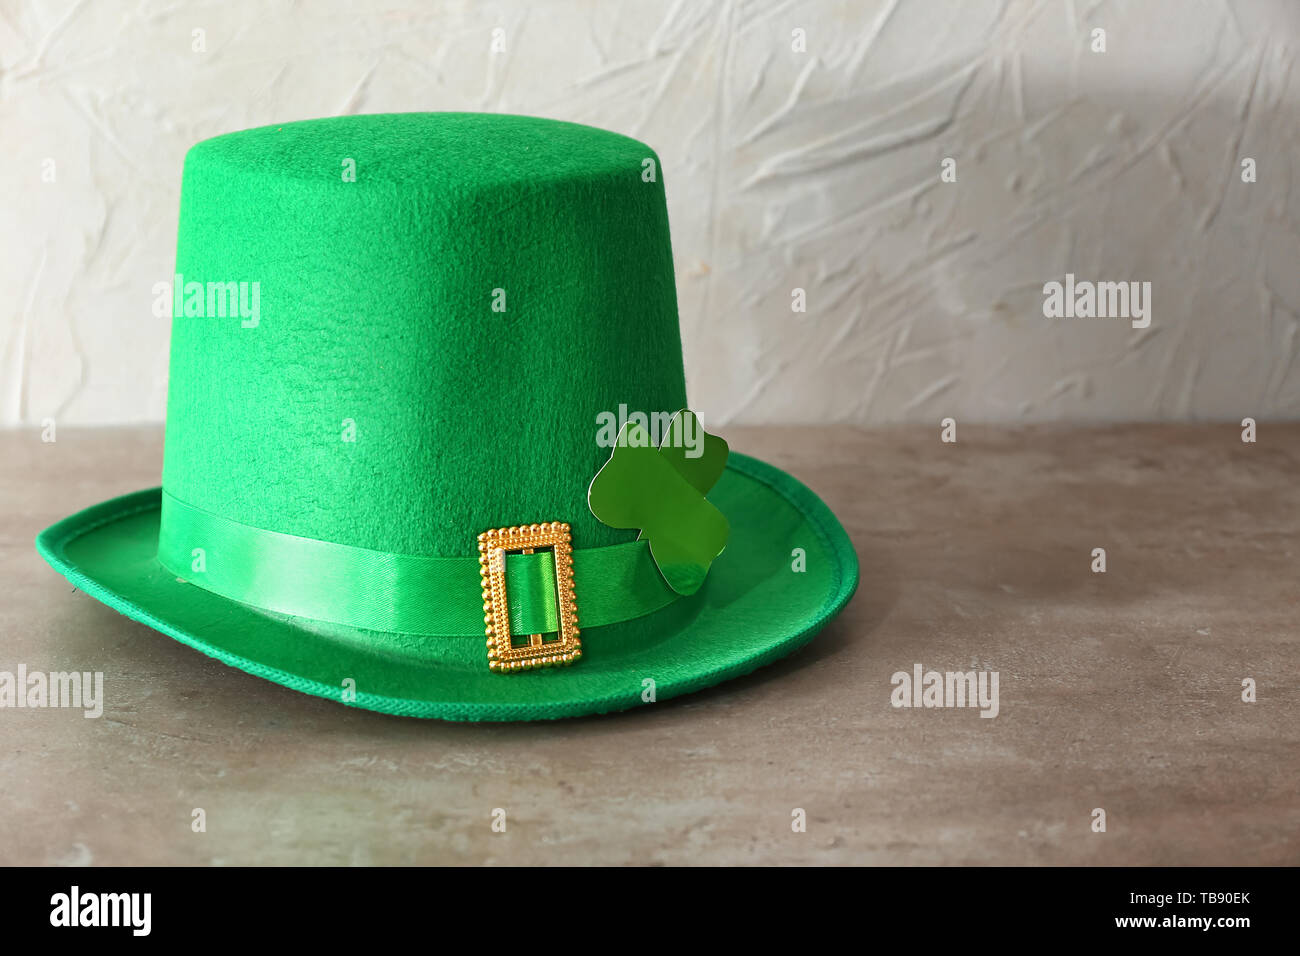 leprechaun hat with pointed ears.html